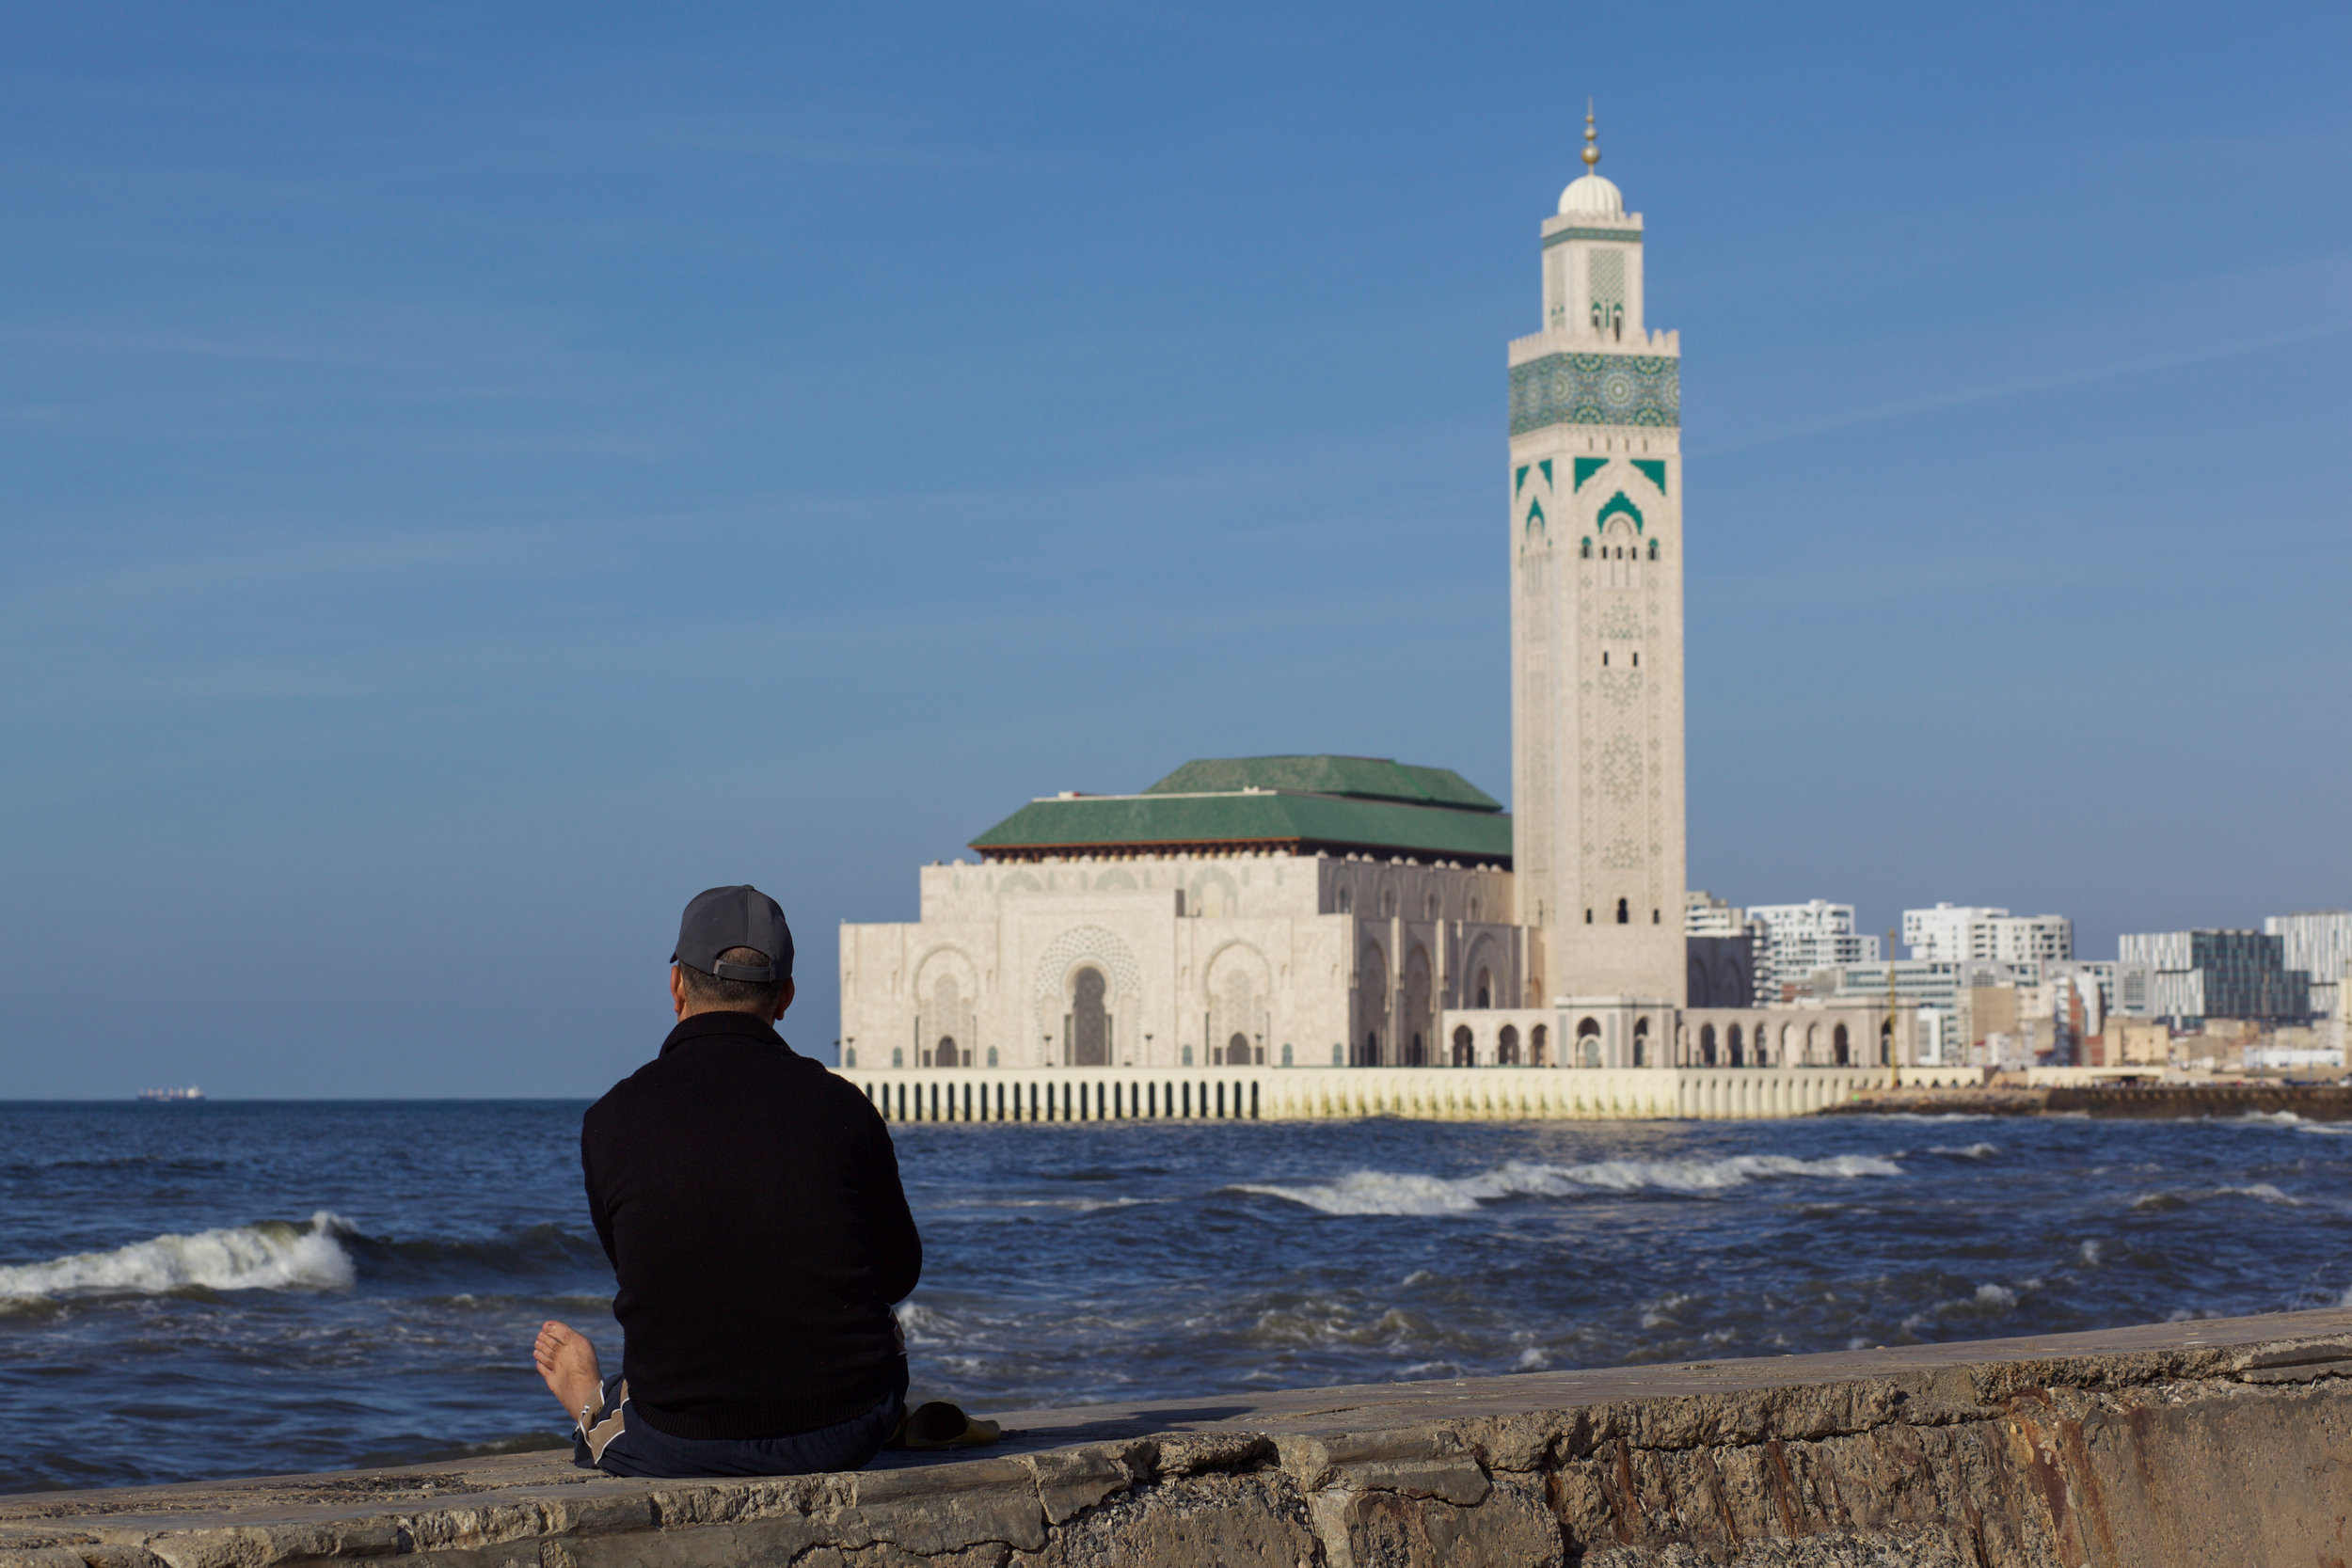 The Hassan II Mosque or Grande Mosquée Hassan II is on the coastline of Casablanca and is the largest mosque in Morocco.